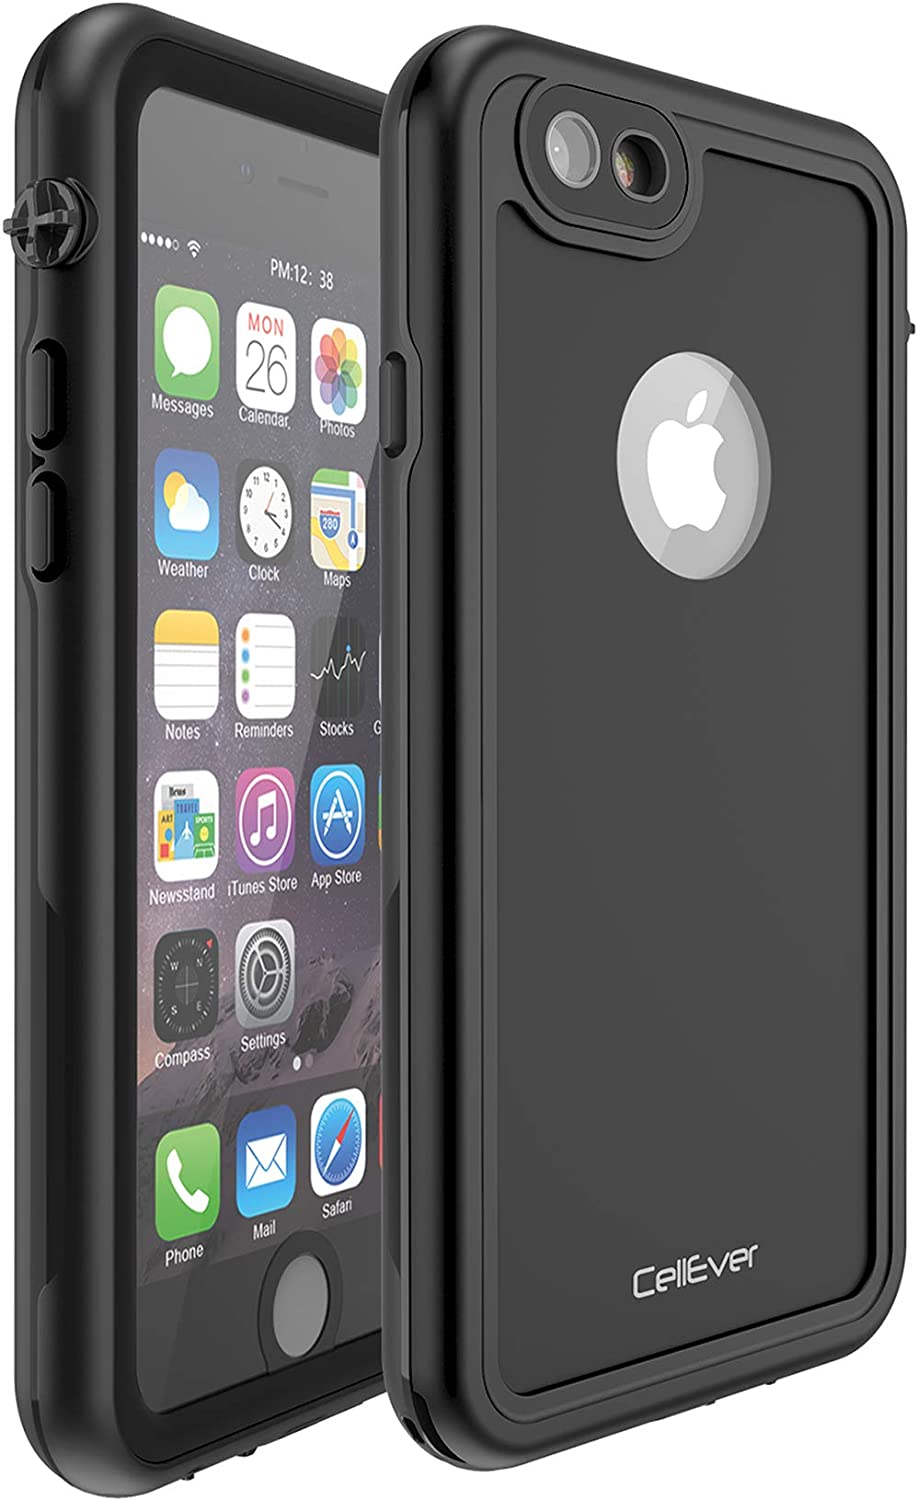 CellEver Compatible with iPhone 6 Plus / 6s Plus Waterproof Case Shockproof IP68 Certified SandProof Snowproof Full Body Protective Cover Designed for iPhone 6 Plus and iPhone 6s Plus KZ C-Black